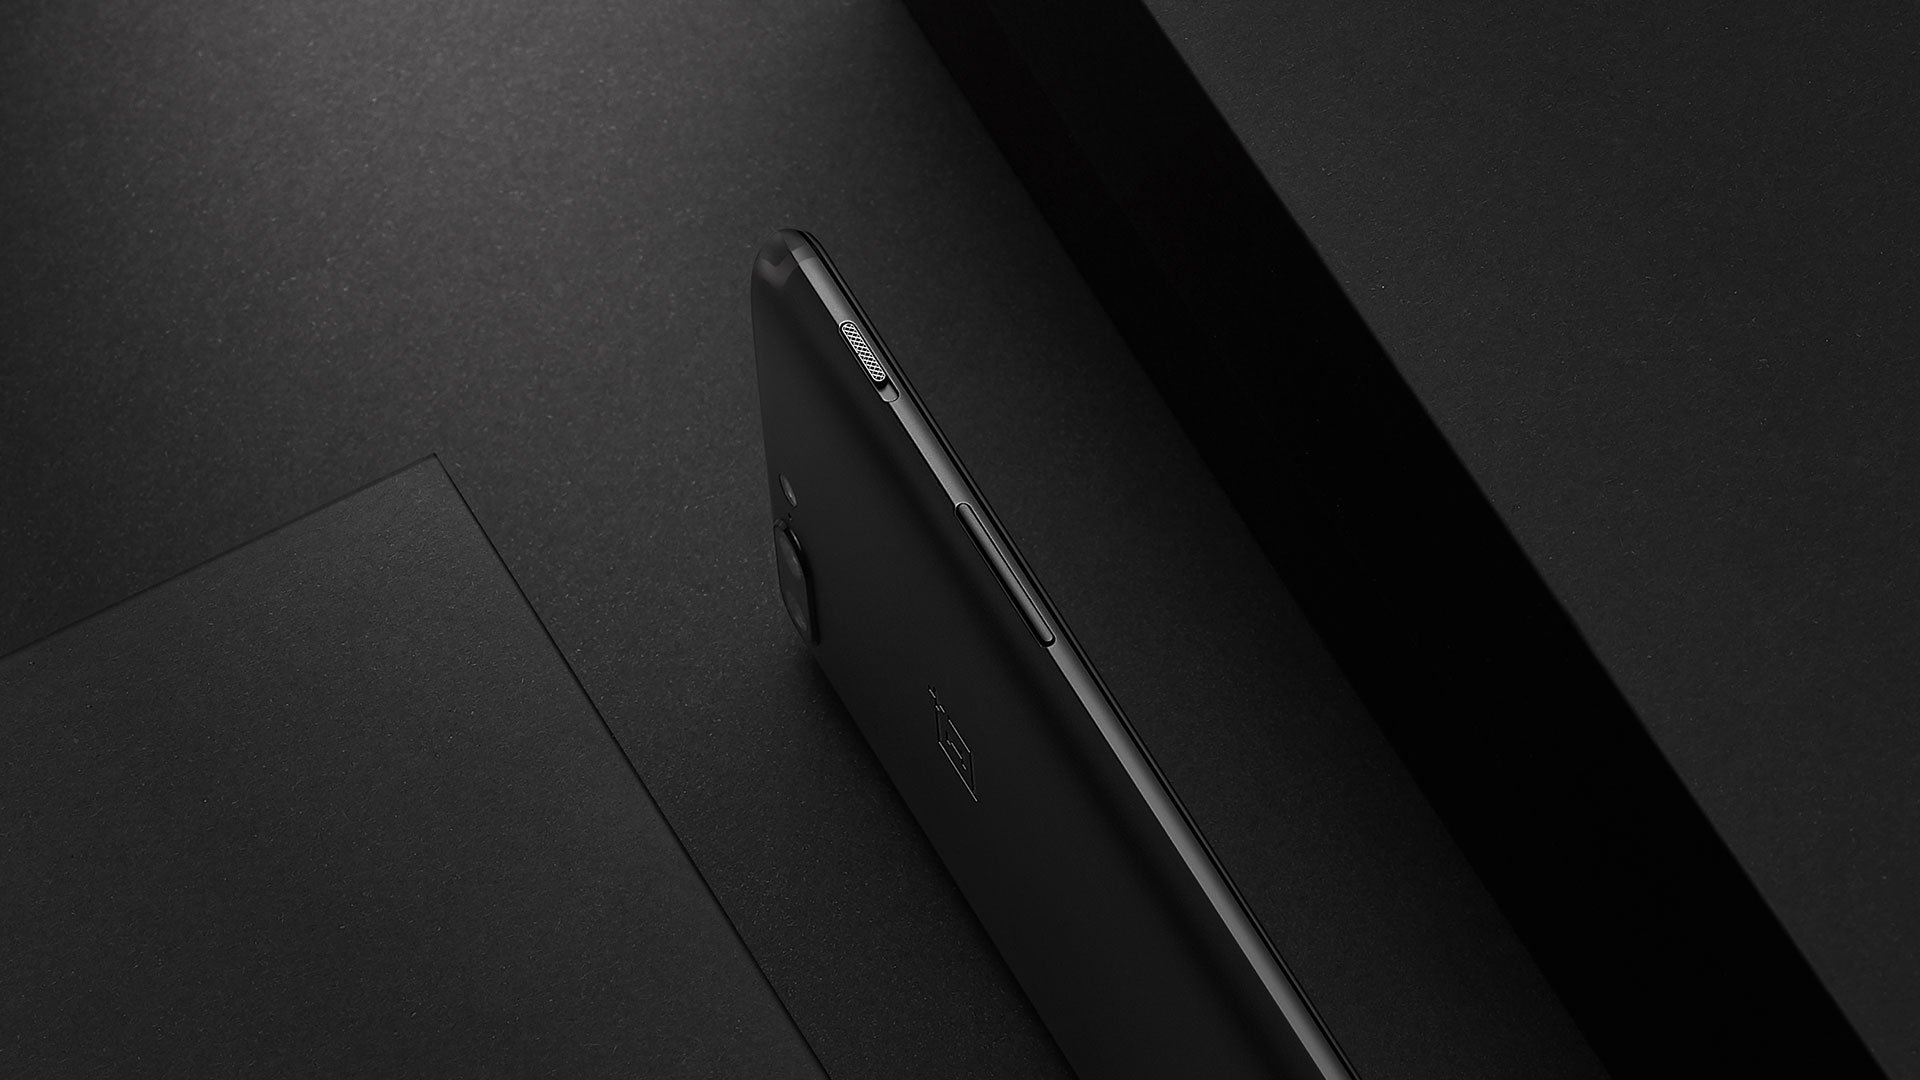 OnePlus 5 lateral